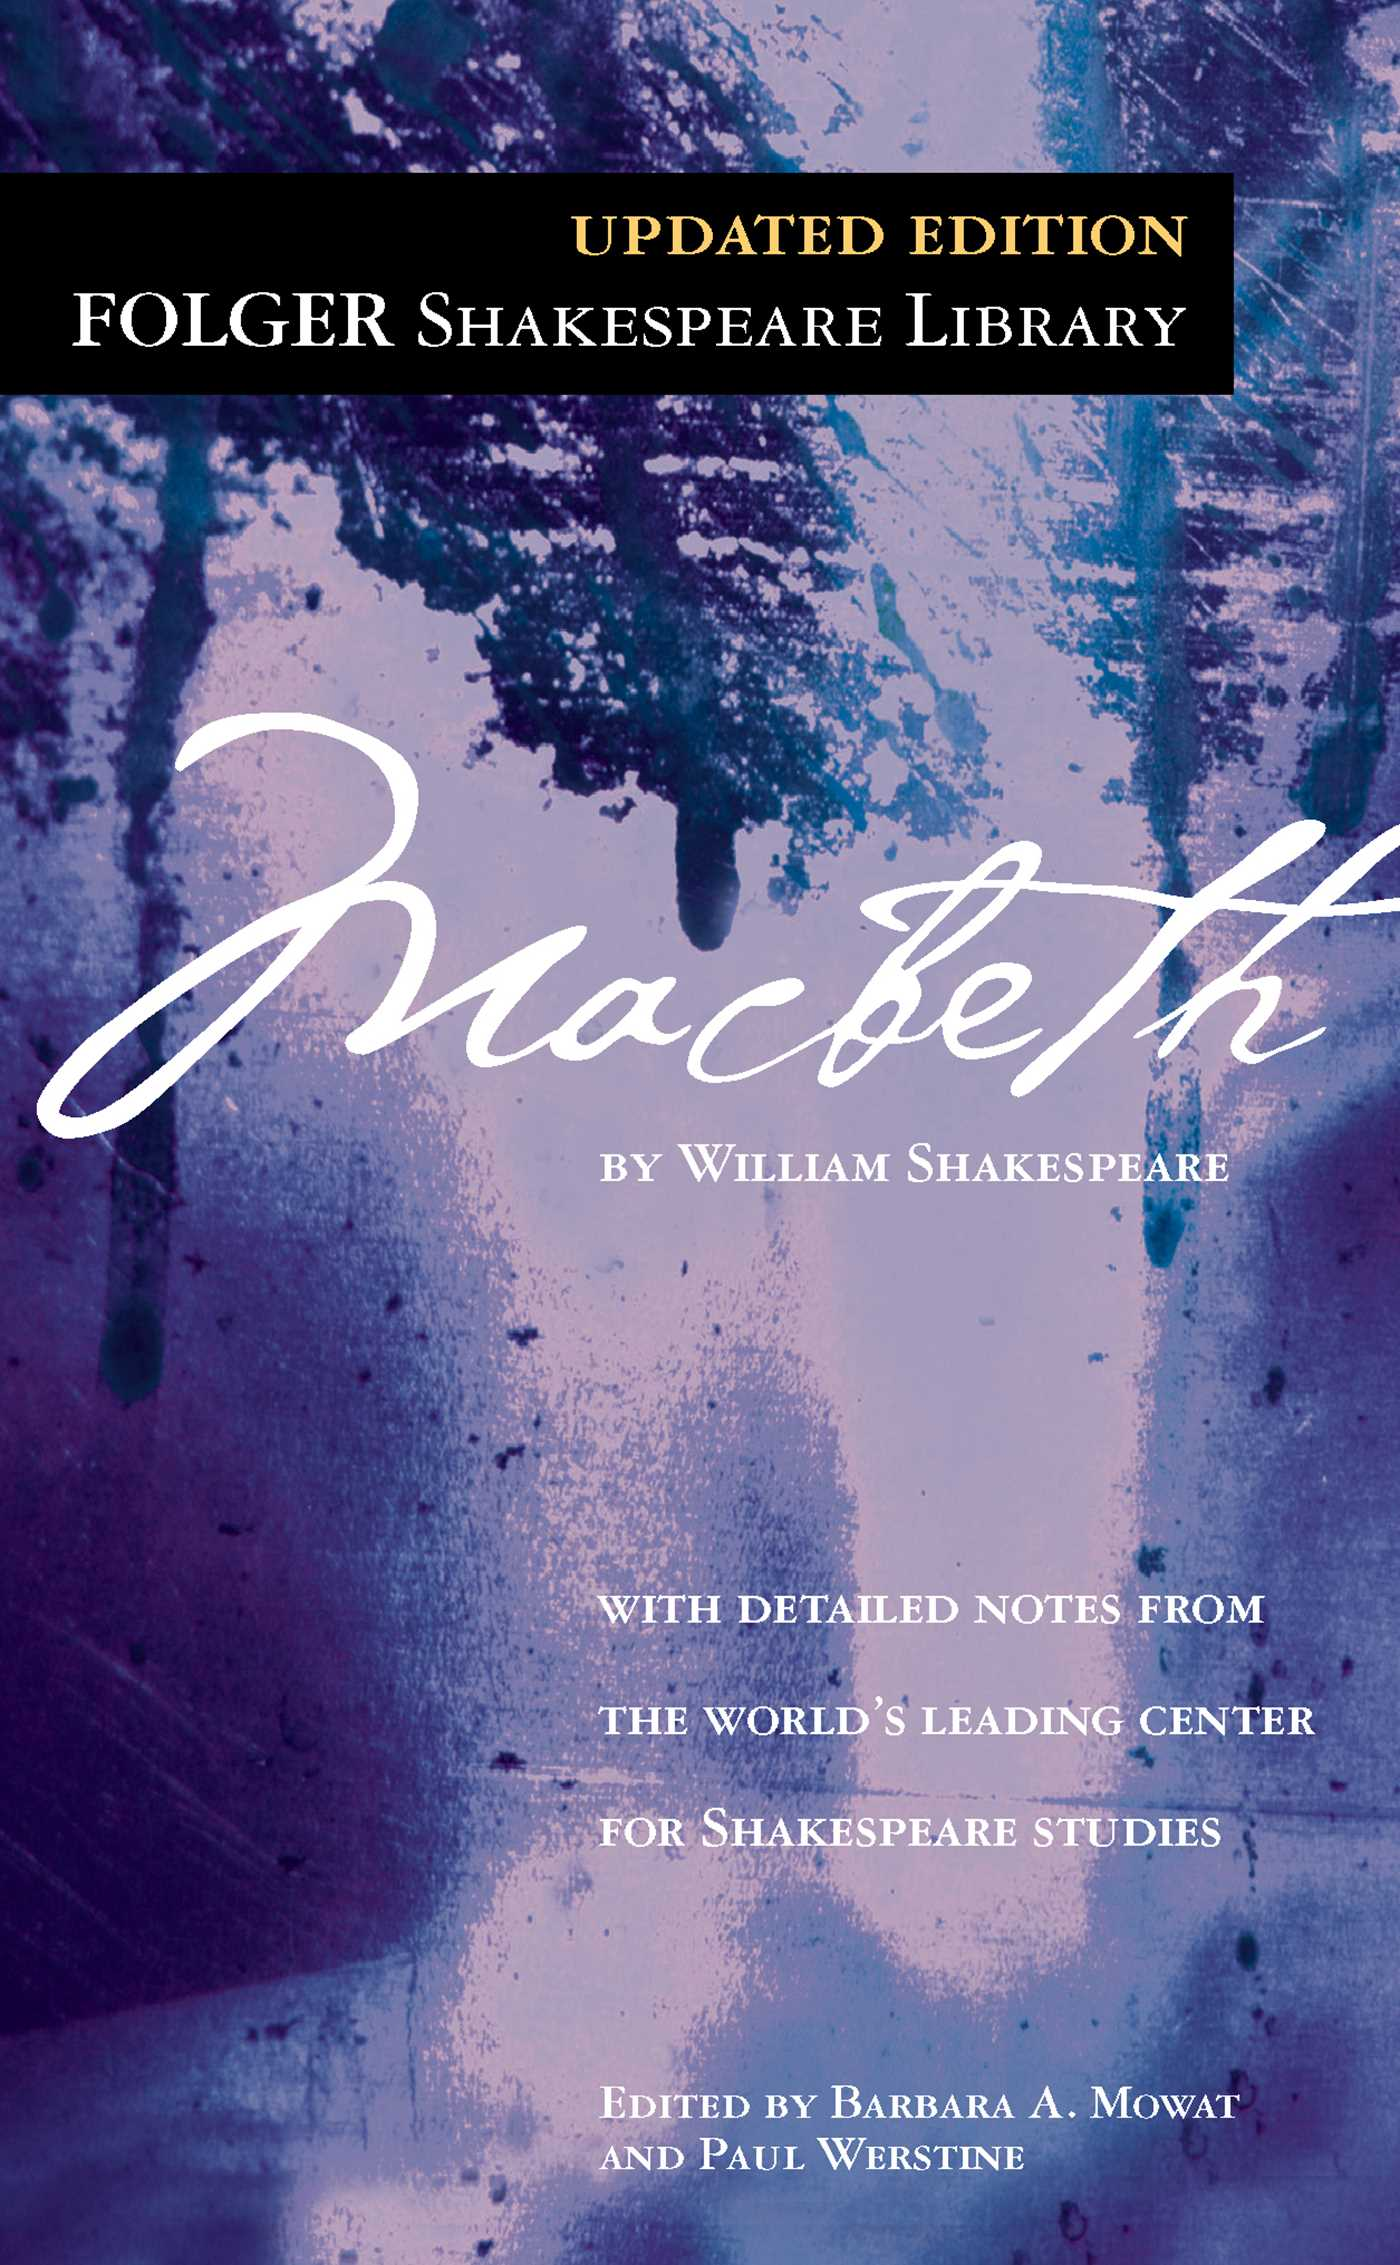 an analysis of the personality of macbeth a play by william shakespeare